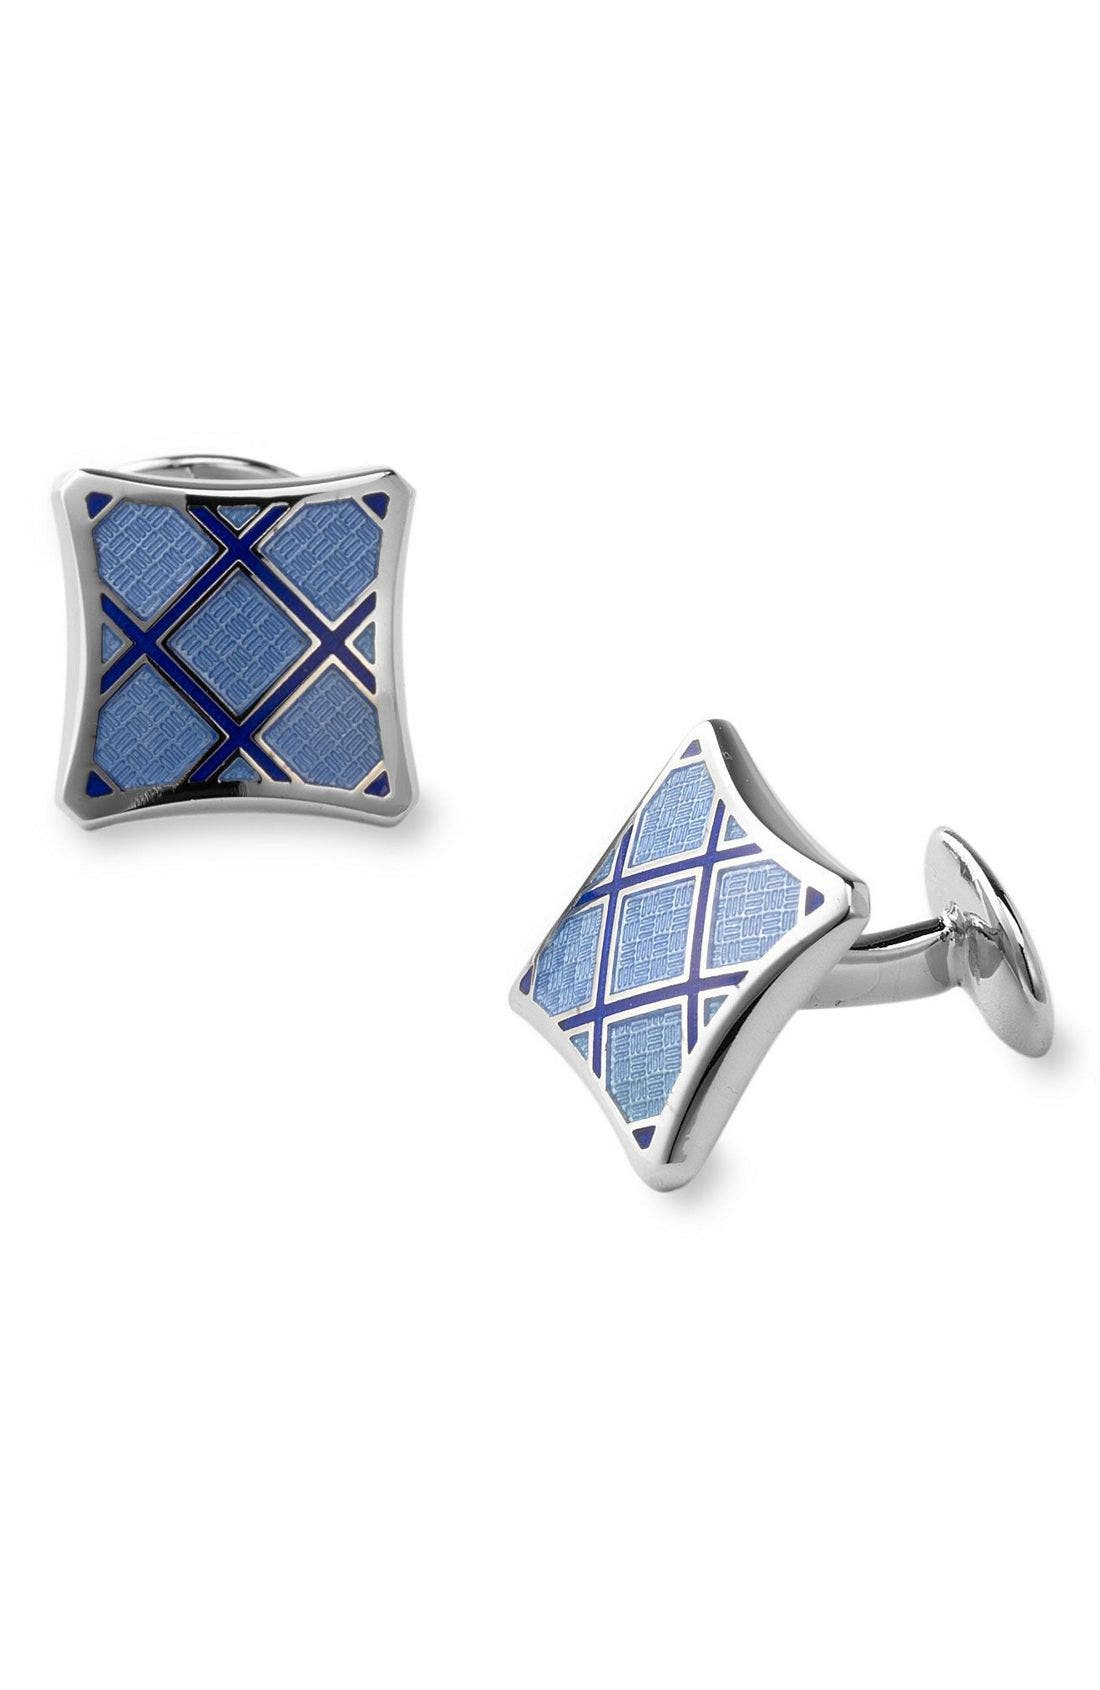 Sterling Silver Cuff Links,                             Main thumbnail 1, color,                             Blue